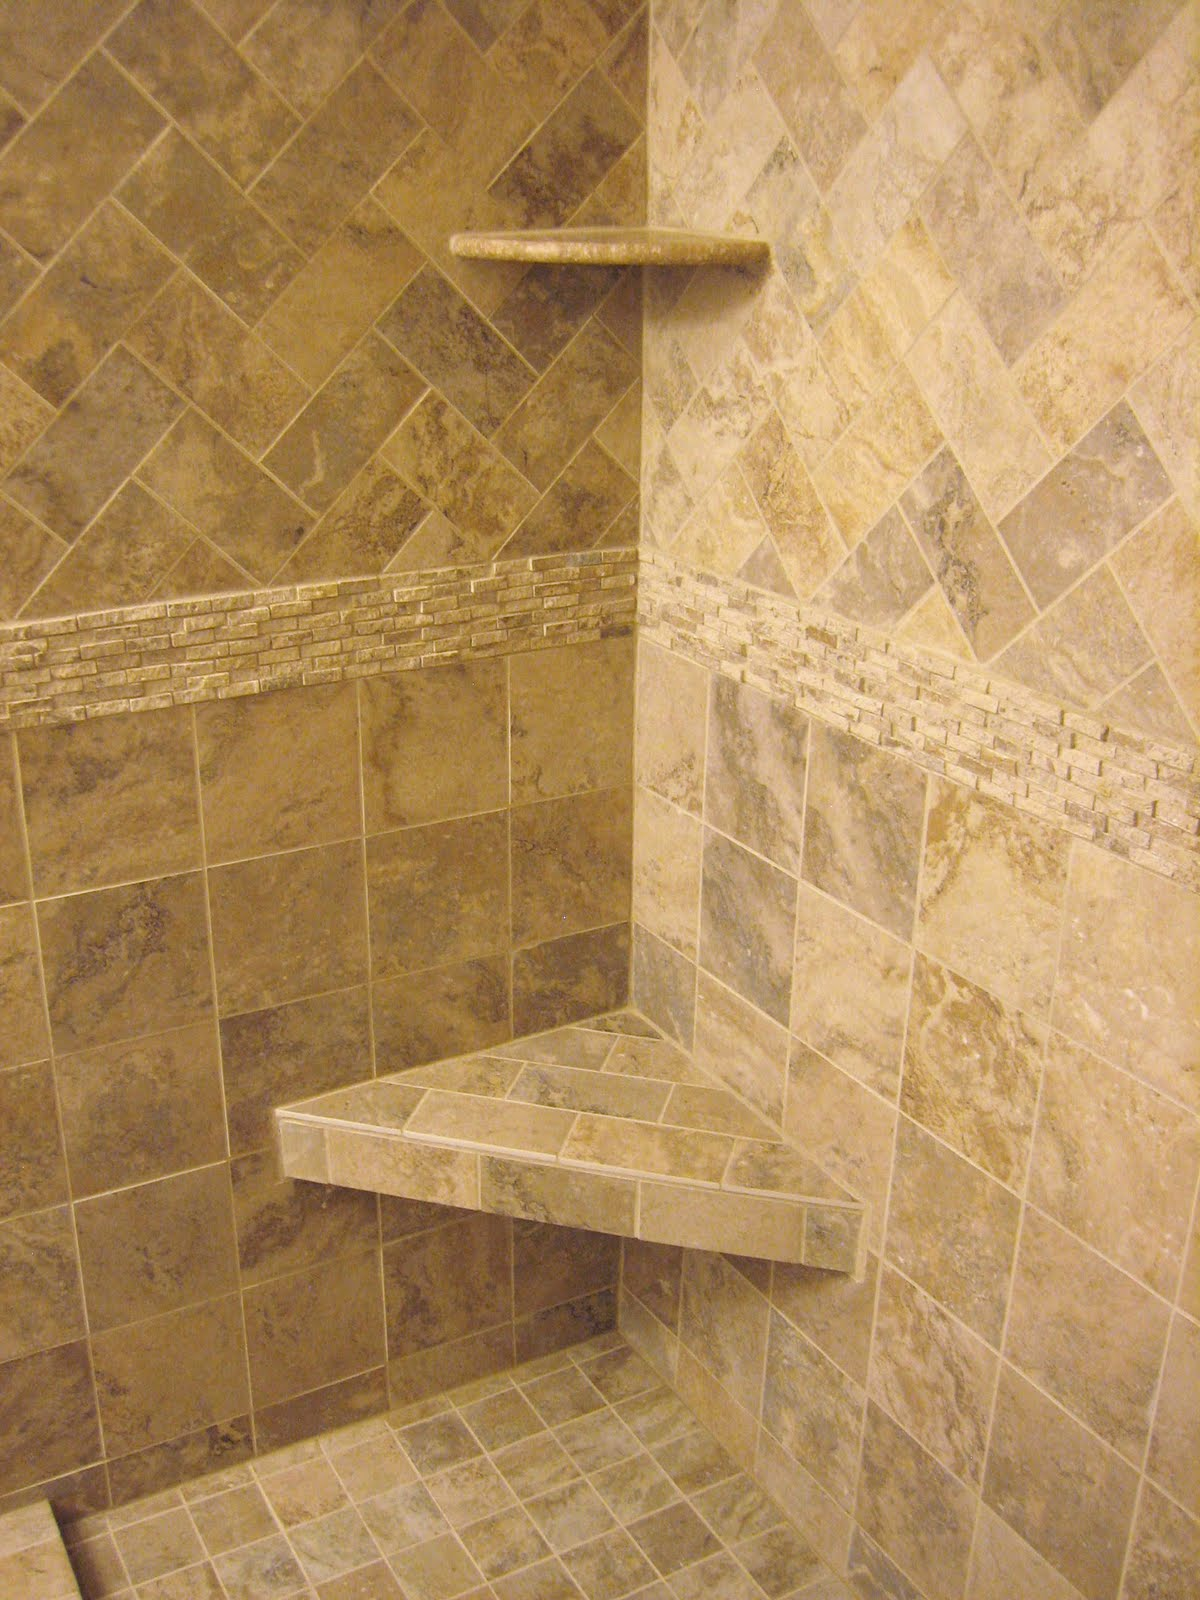 shower tile ideas and bathroom tile comfortable bath shower tile design ideas - Bathroom Tile Designs Ideas